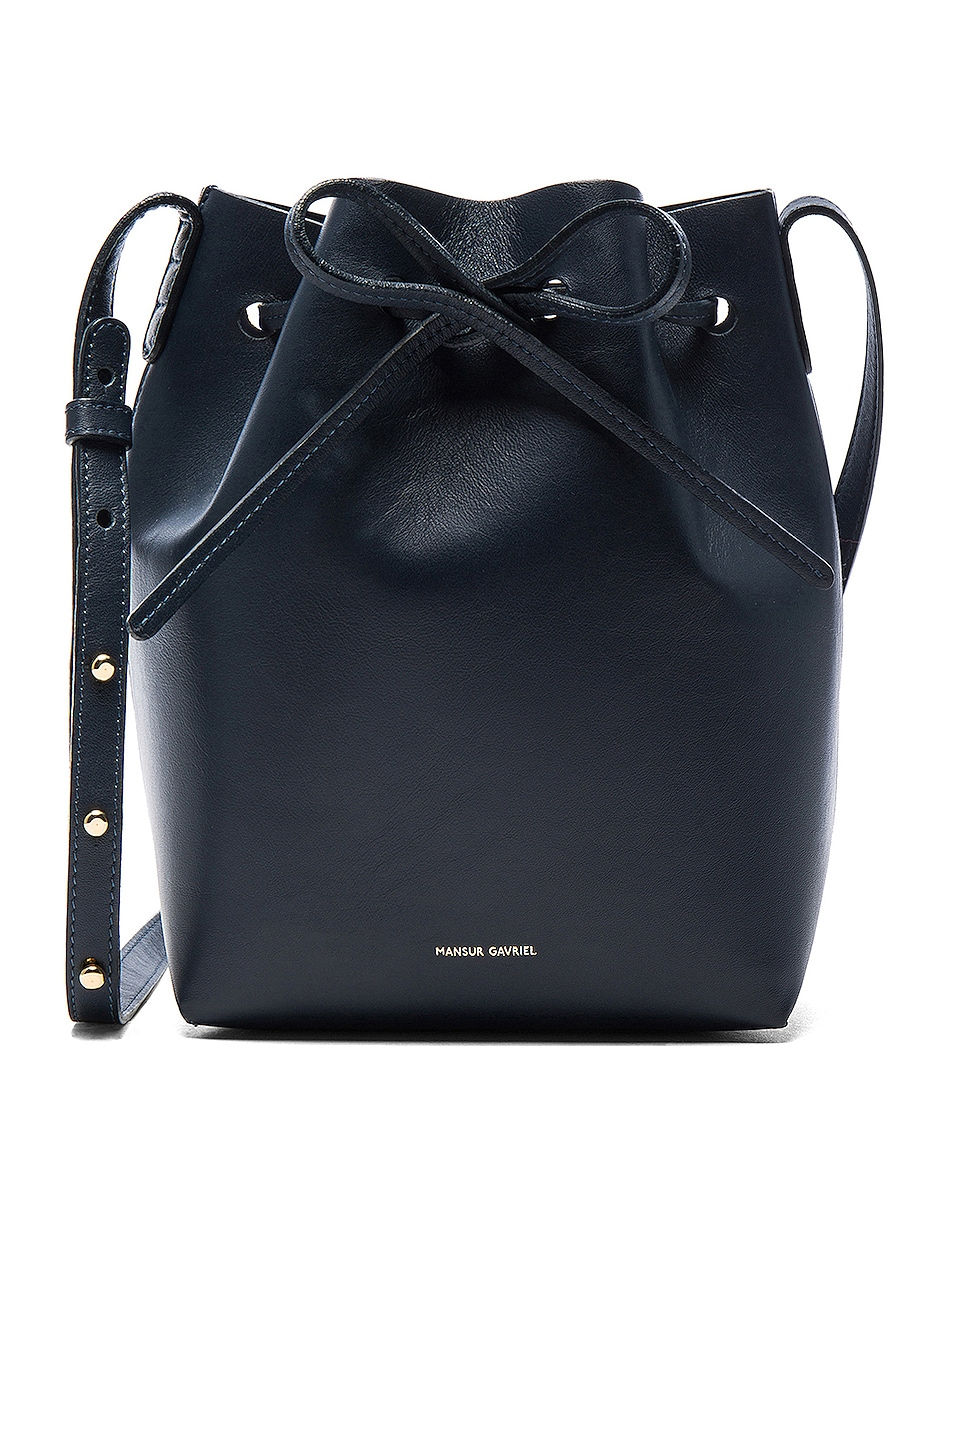 Image 1 of Mansur Gavriel Mini Bucket Bag in Blu Calf